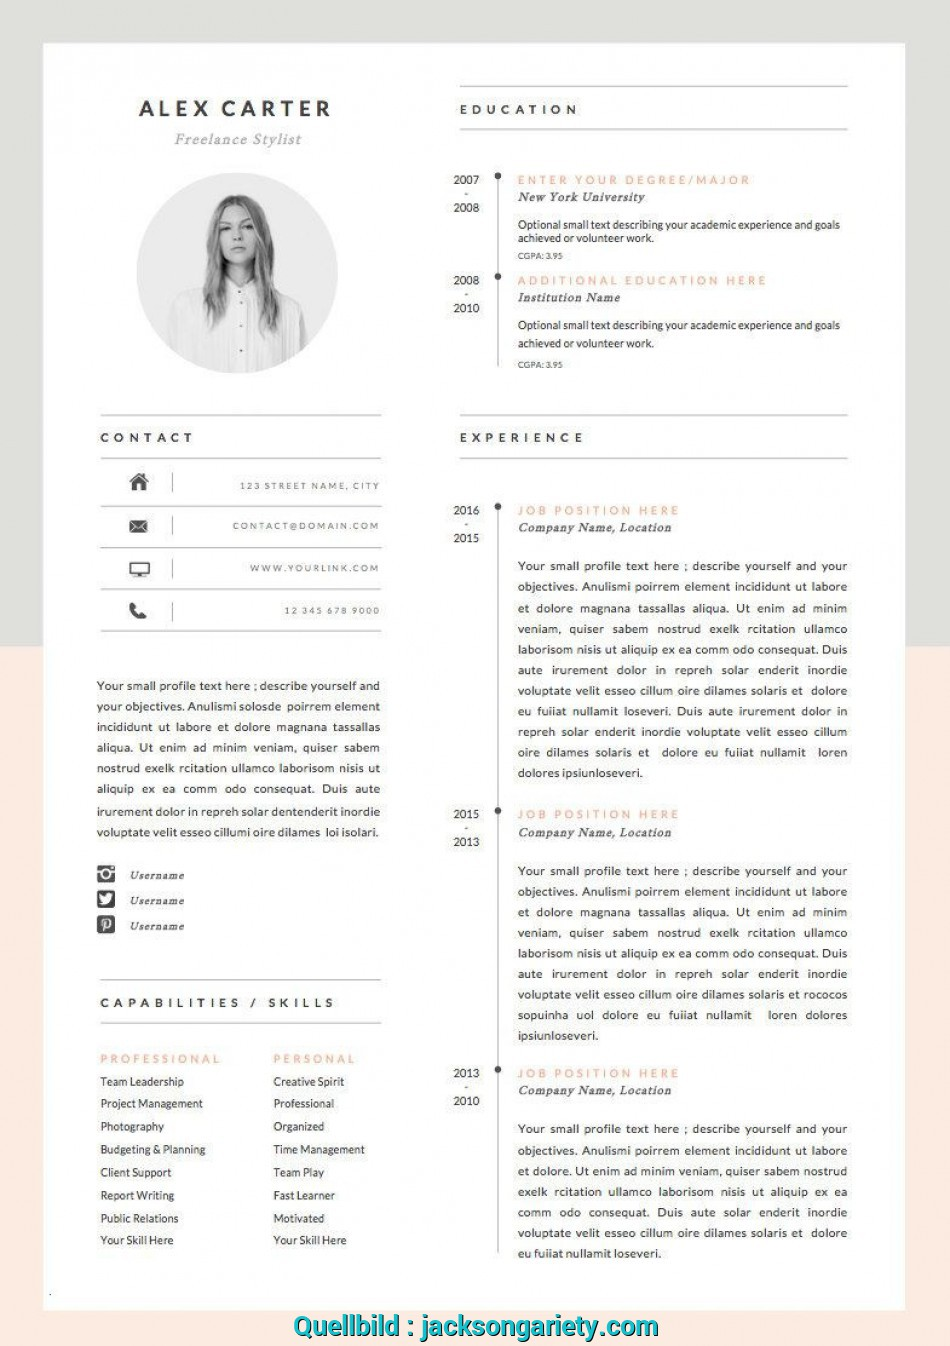 Positiv Modern Resume Template Cover Letter Icon For Microsoft Word Luxus Vorlage Lebenslauf